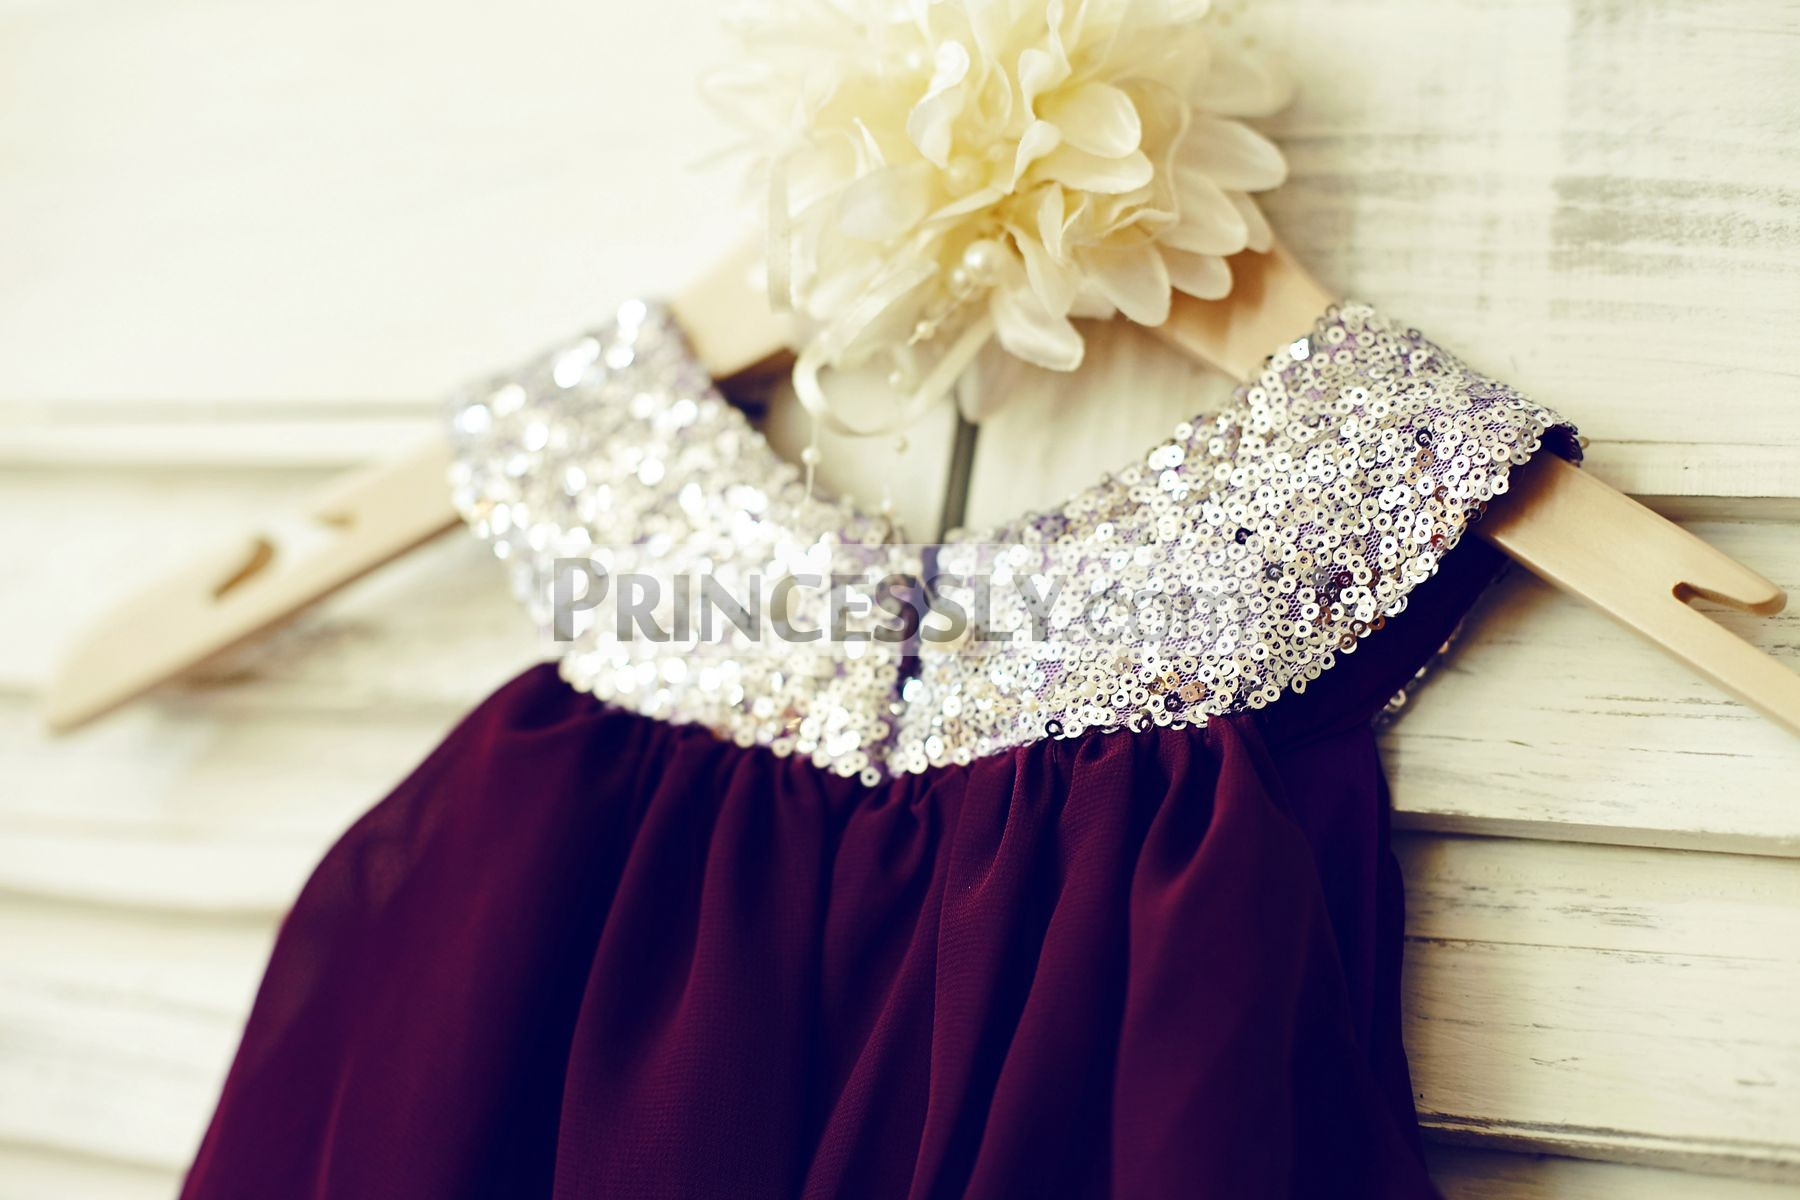 c89a605f7a8 Boho Silver Sequins Cupcake Purple Plum Chiffon Flower Girl Dress ...